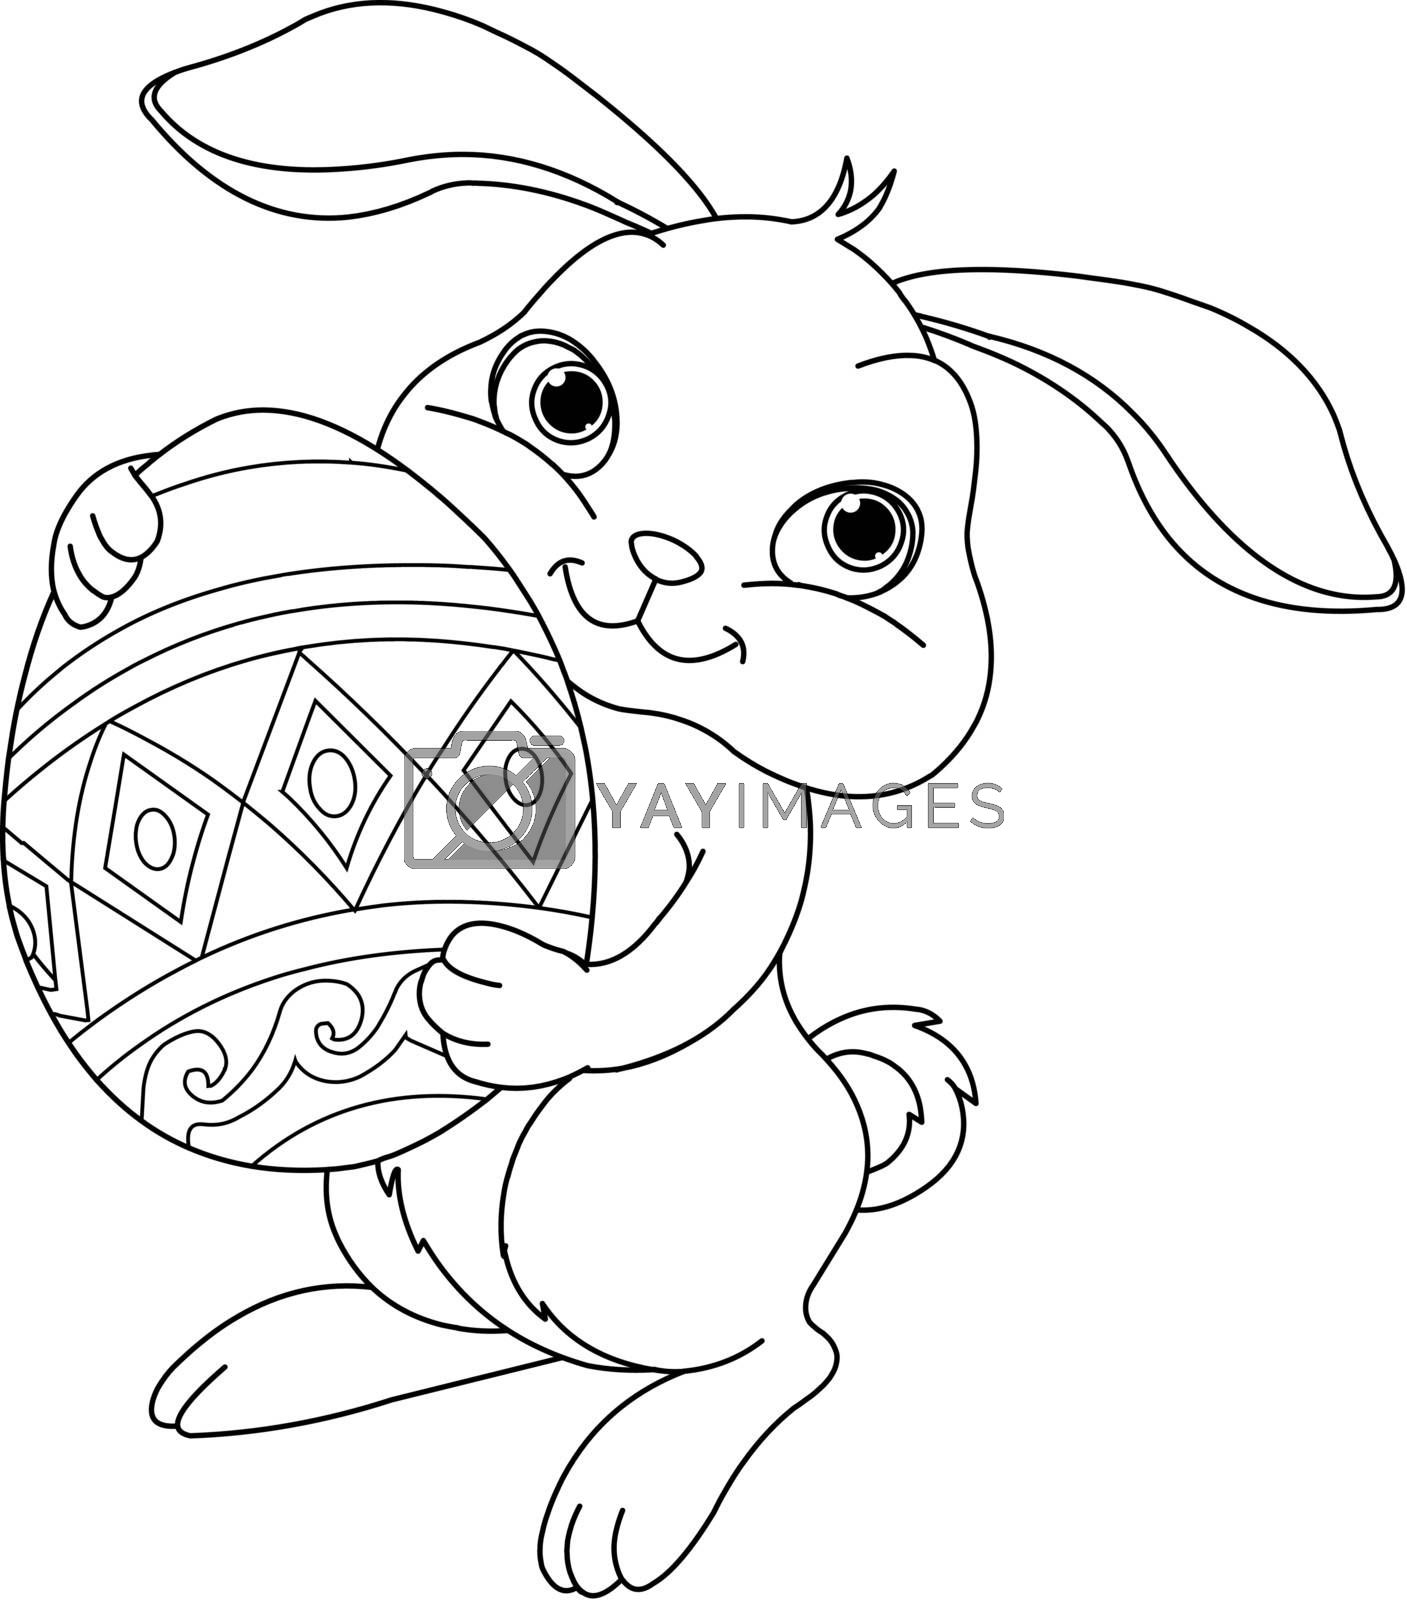 Illustration of happy Easter bunny carrying egg. Coloring page